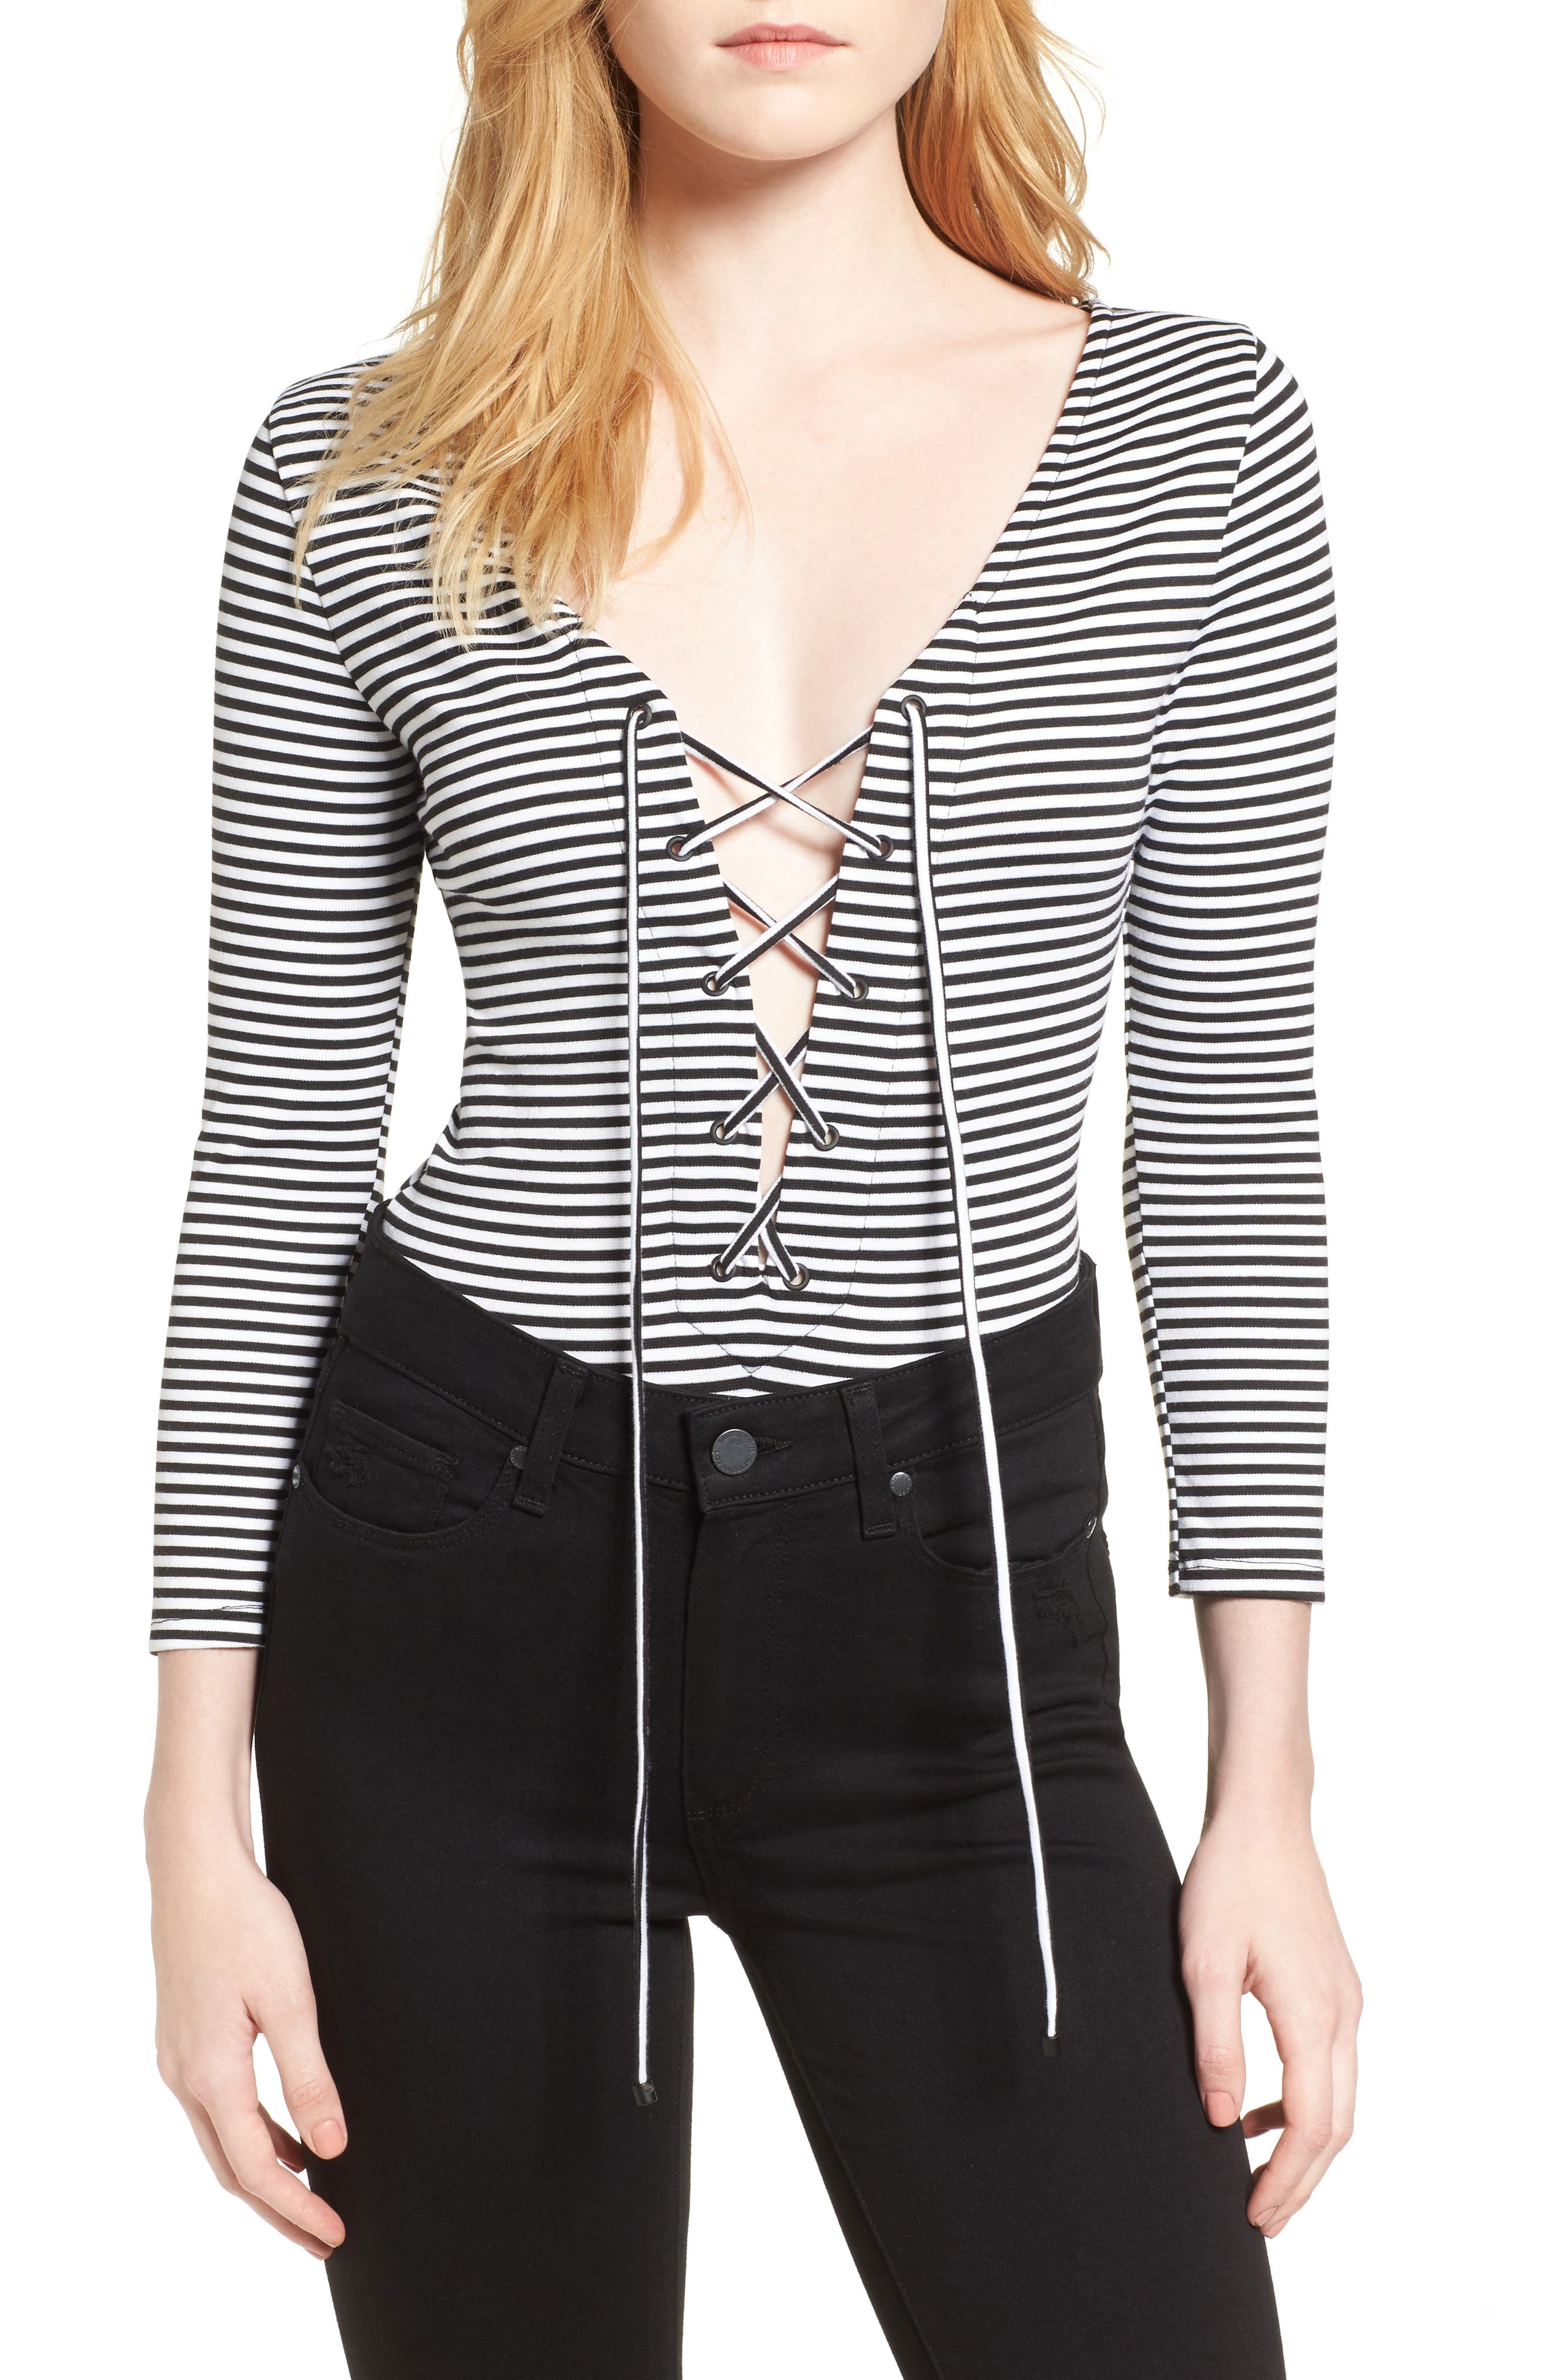 KENDALL + KYLIE Lace-Up Bodysuit